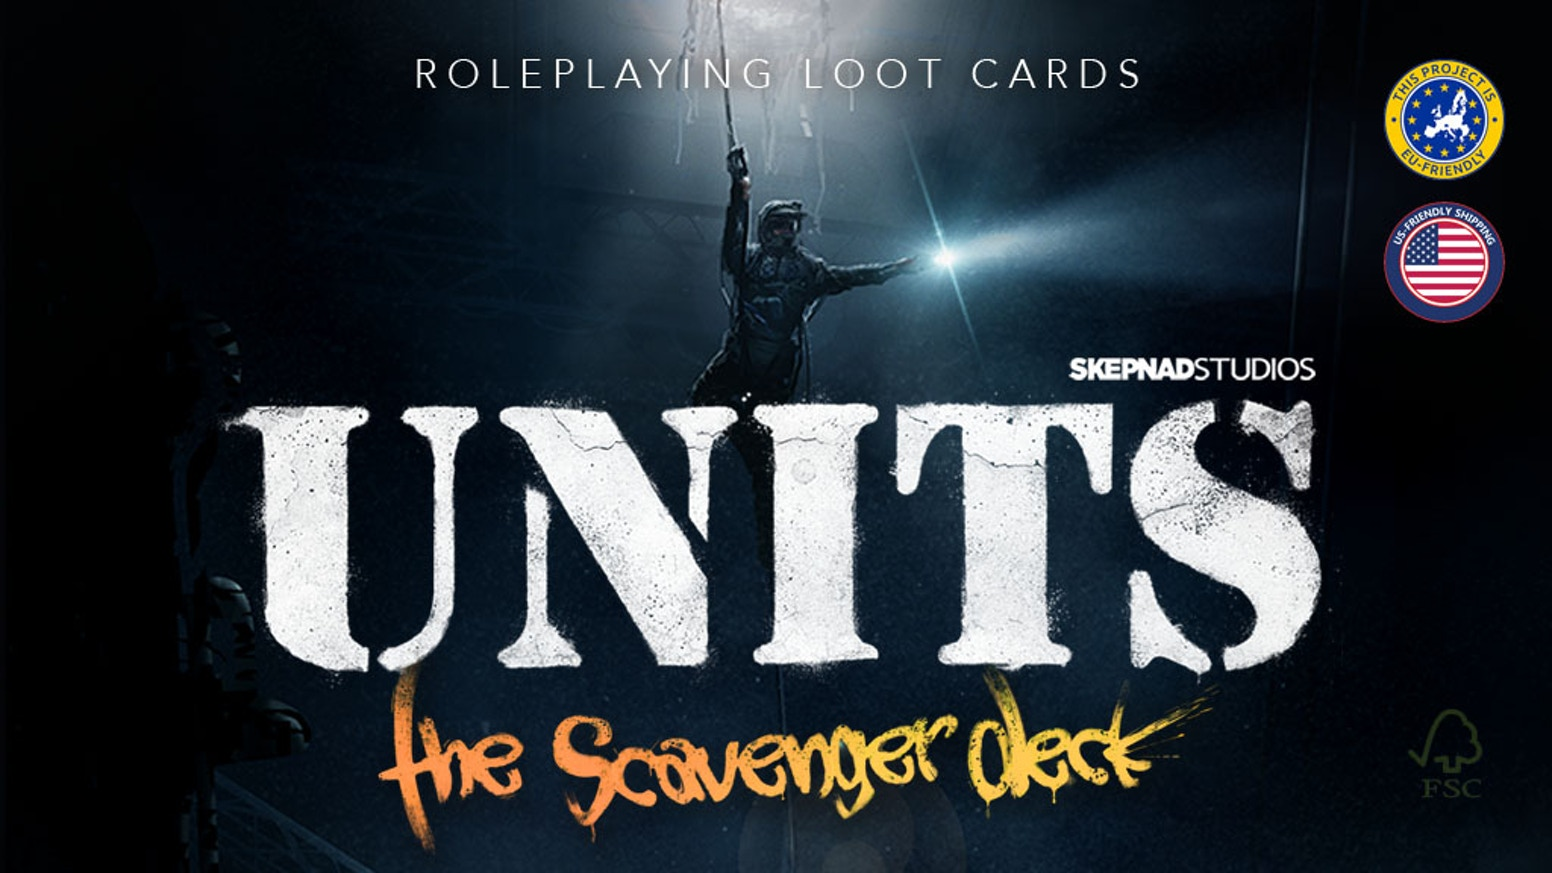 UNITS - A new take on generic loot cards for all types of post-apocalyptic, modern and zombie tabletop role-playing games. UNITS - The Scavenger Deck by UNITS. www.units.systems